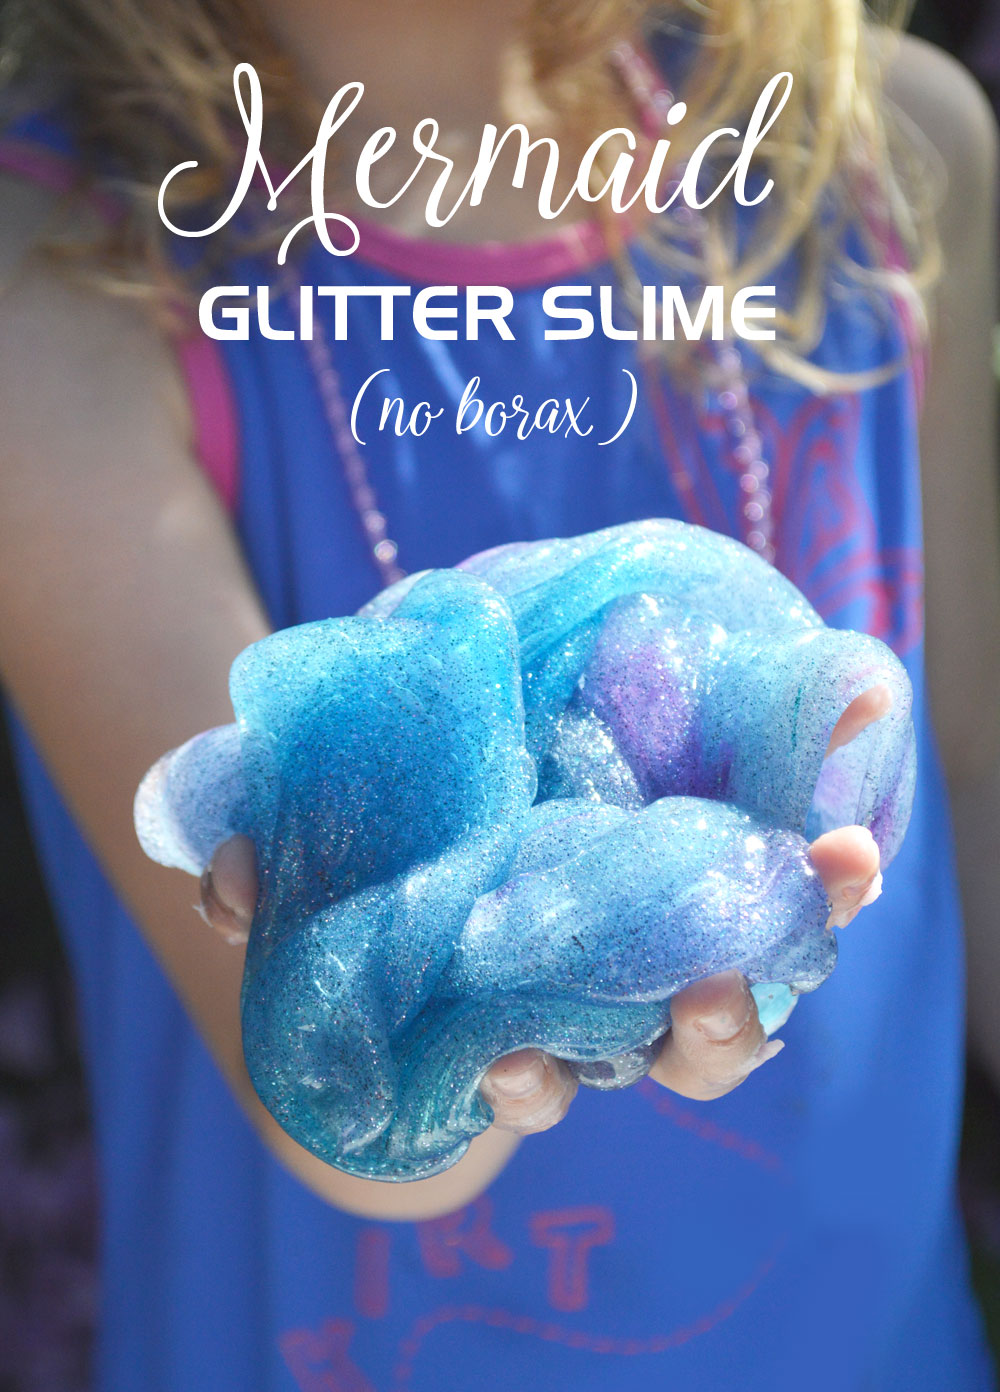 Mermaid glitter slime with no borax - Mommy Scene